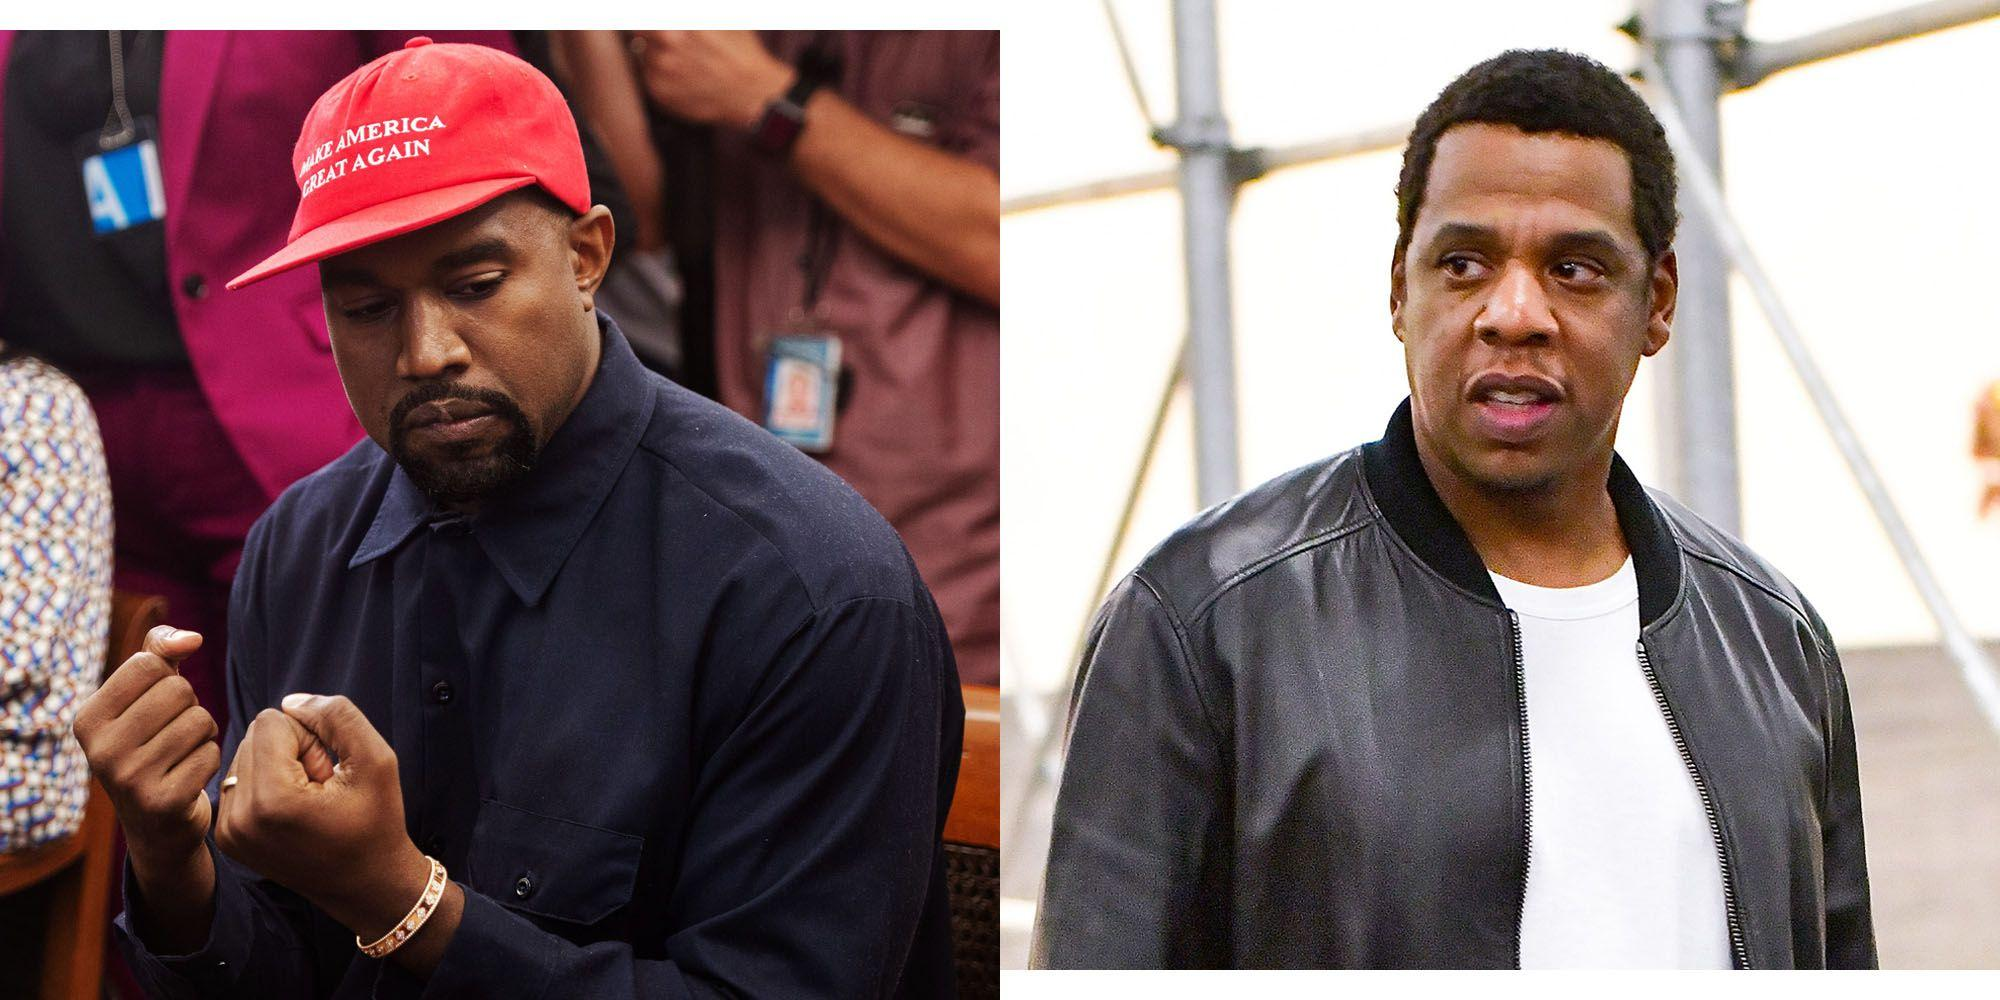 Kanye West Sues Jay Z And Says He 'Helped Revitalize' His Career - Their Feud Is Back On!